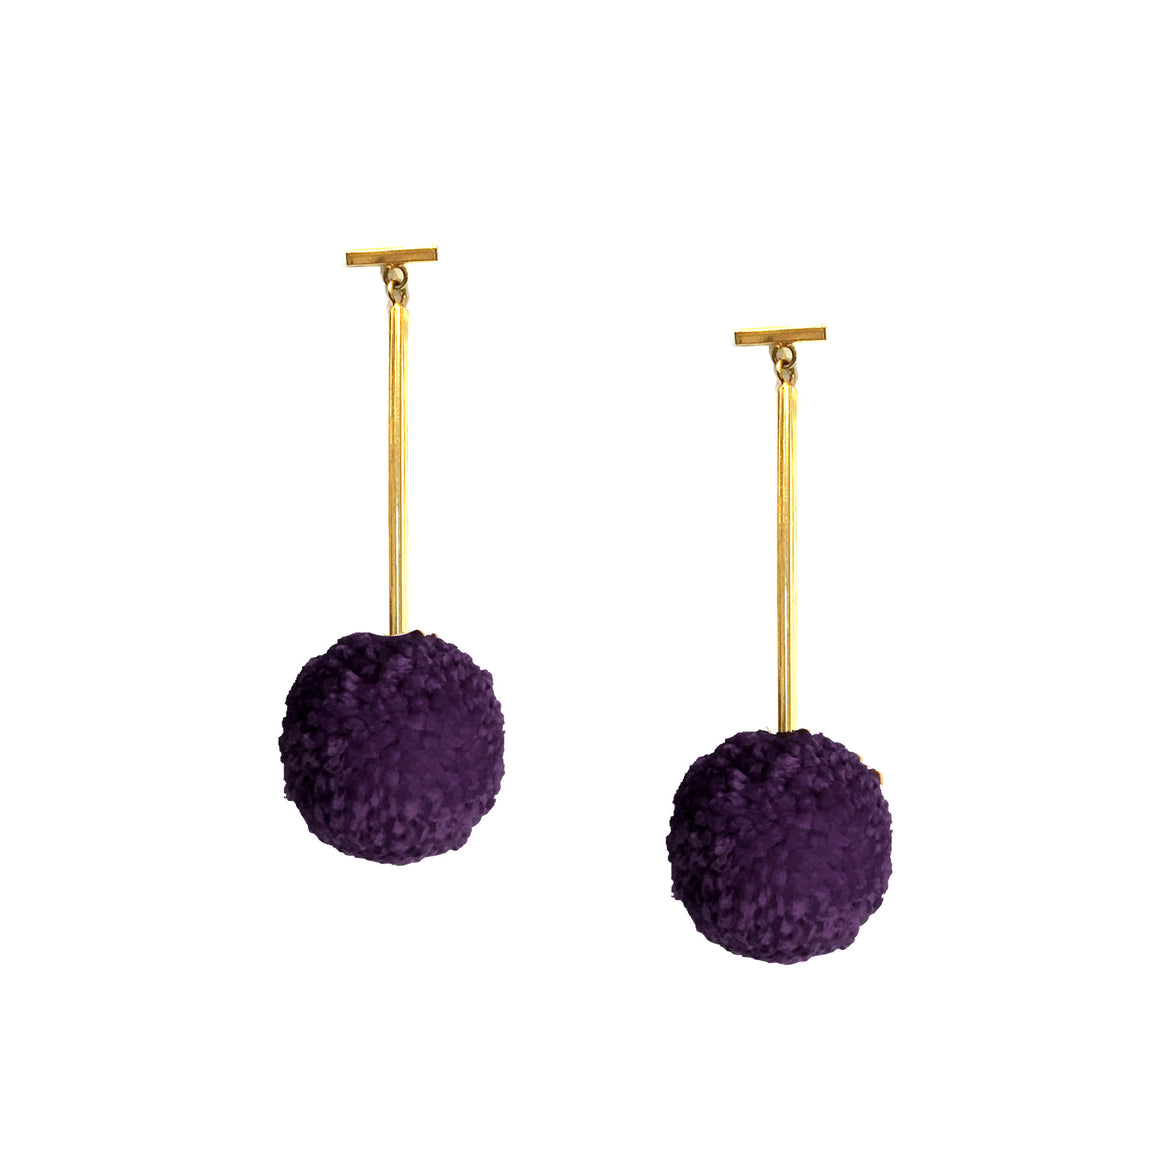 "Mixed Berry 1"" Yarn Pom Pom T Bar Earrings, Earrings, Tuleste, Tuleste"